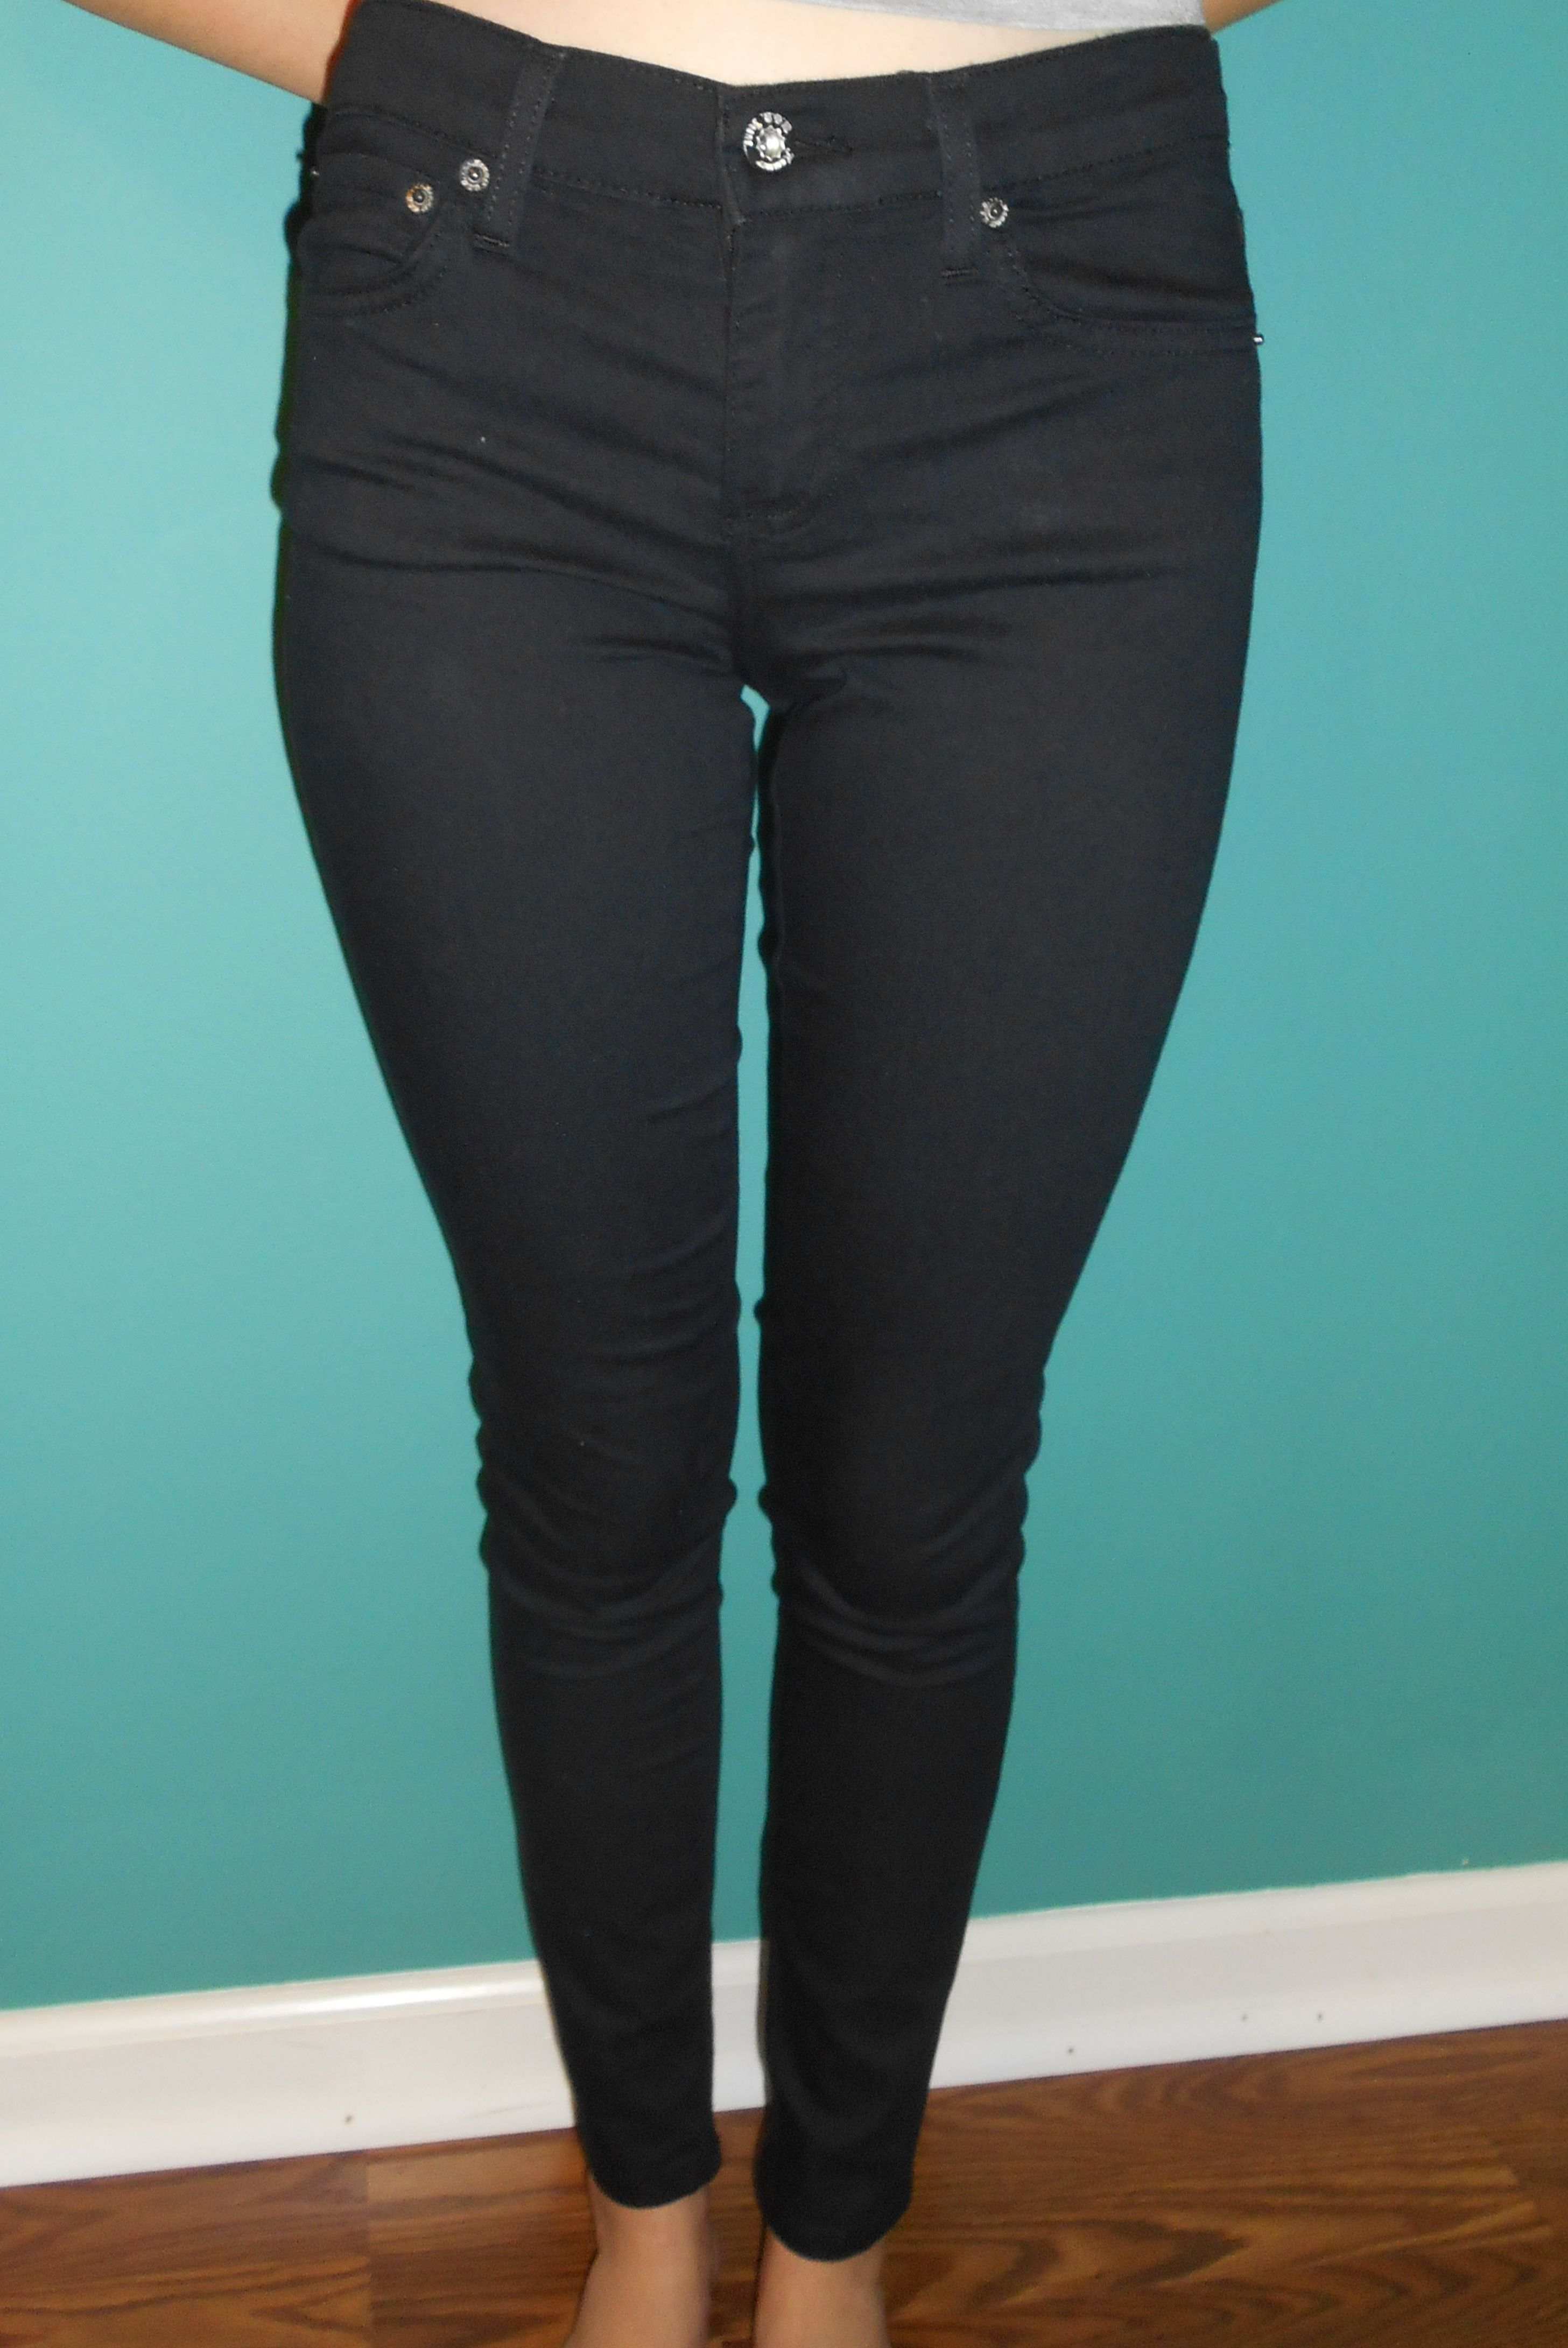 Black Skinny Jeans by Hammer USA. These are very comfortable jeans- fit a lot like jeggings, but do have actual pockets.  Model is 5'5, and wearing a 3.  Size 3: Waist (inches): 14 Inseam (inches): 29  Size 5: Waist (inches): 14.75 Inseam (inches): 29.5  Size 7 Waist (inches): 15 In...